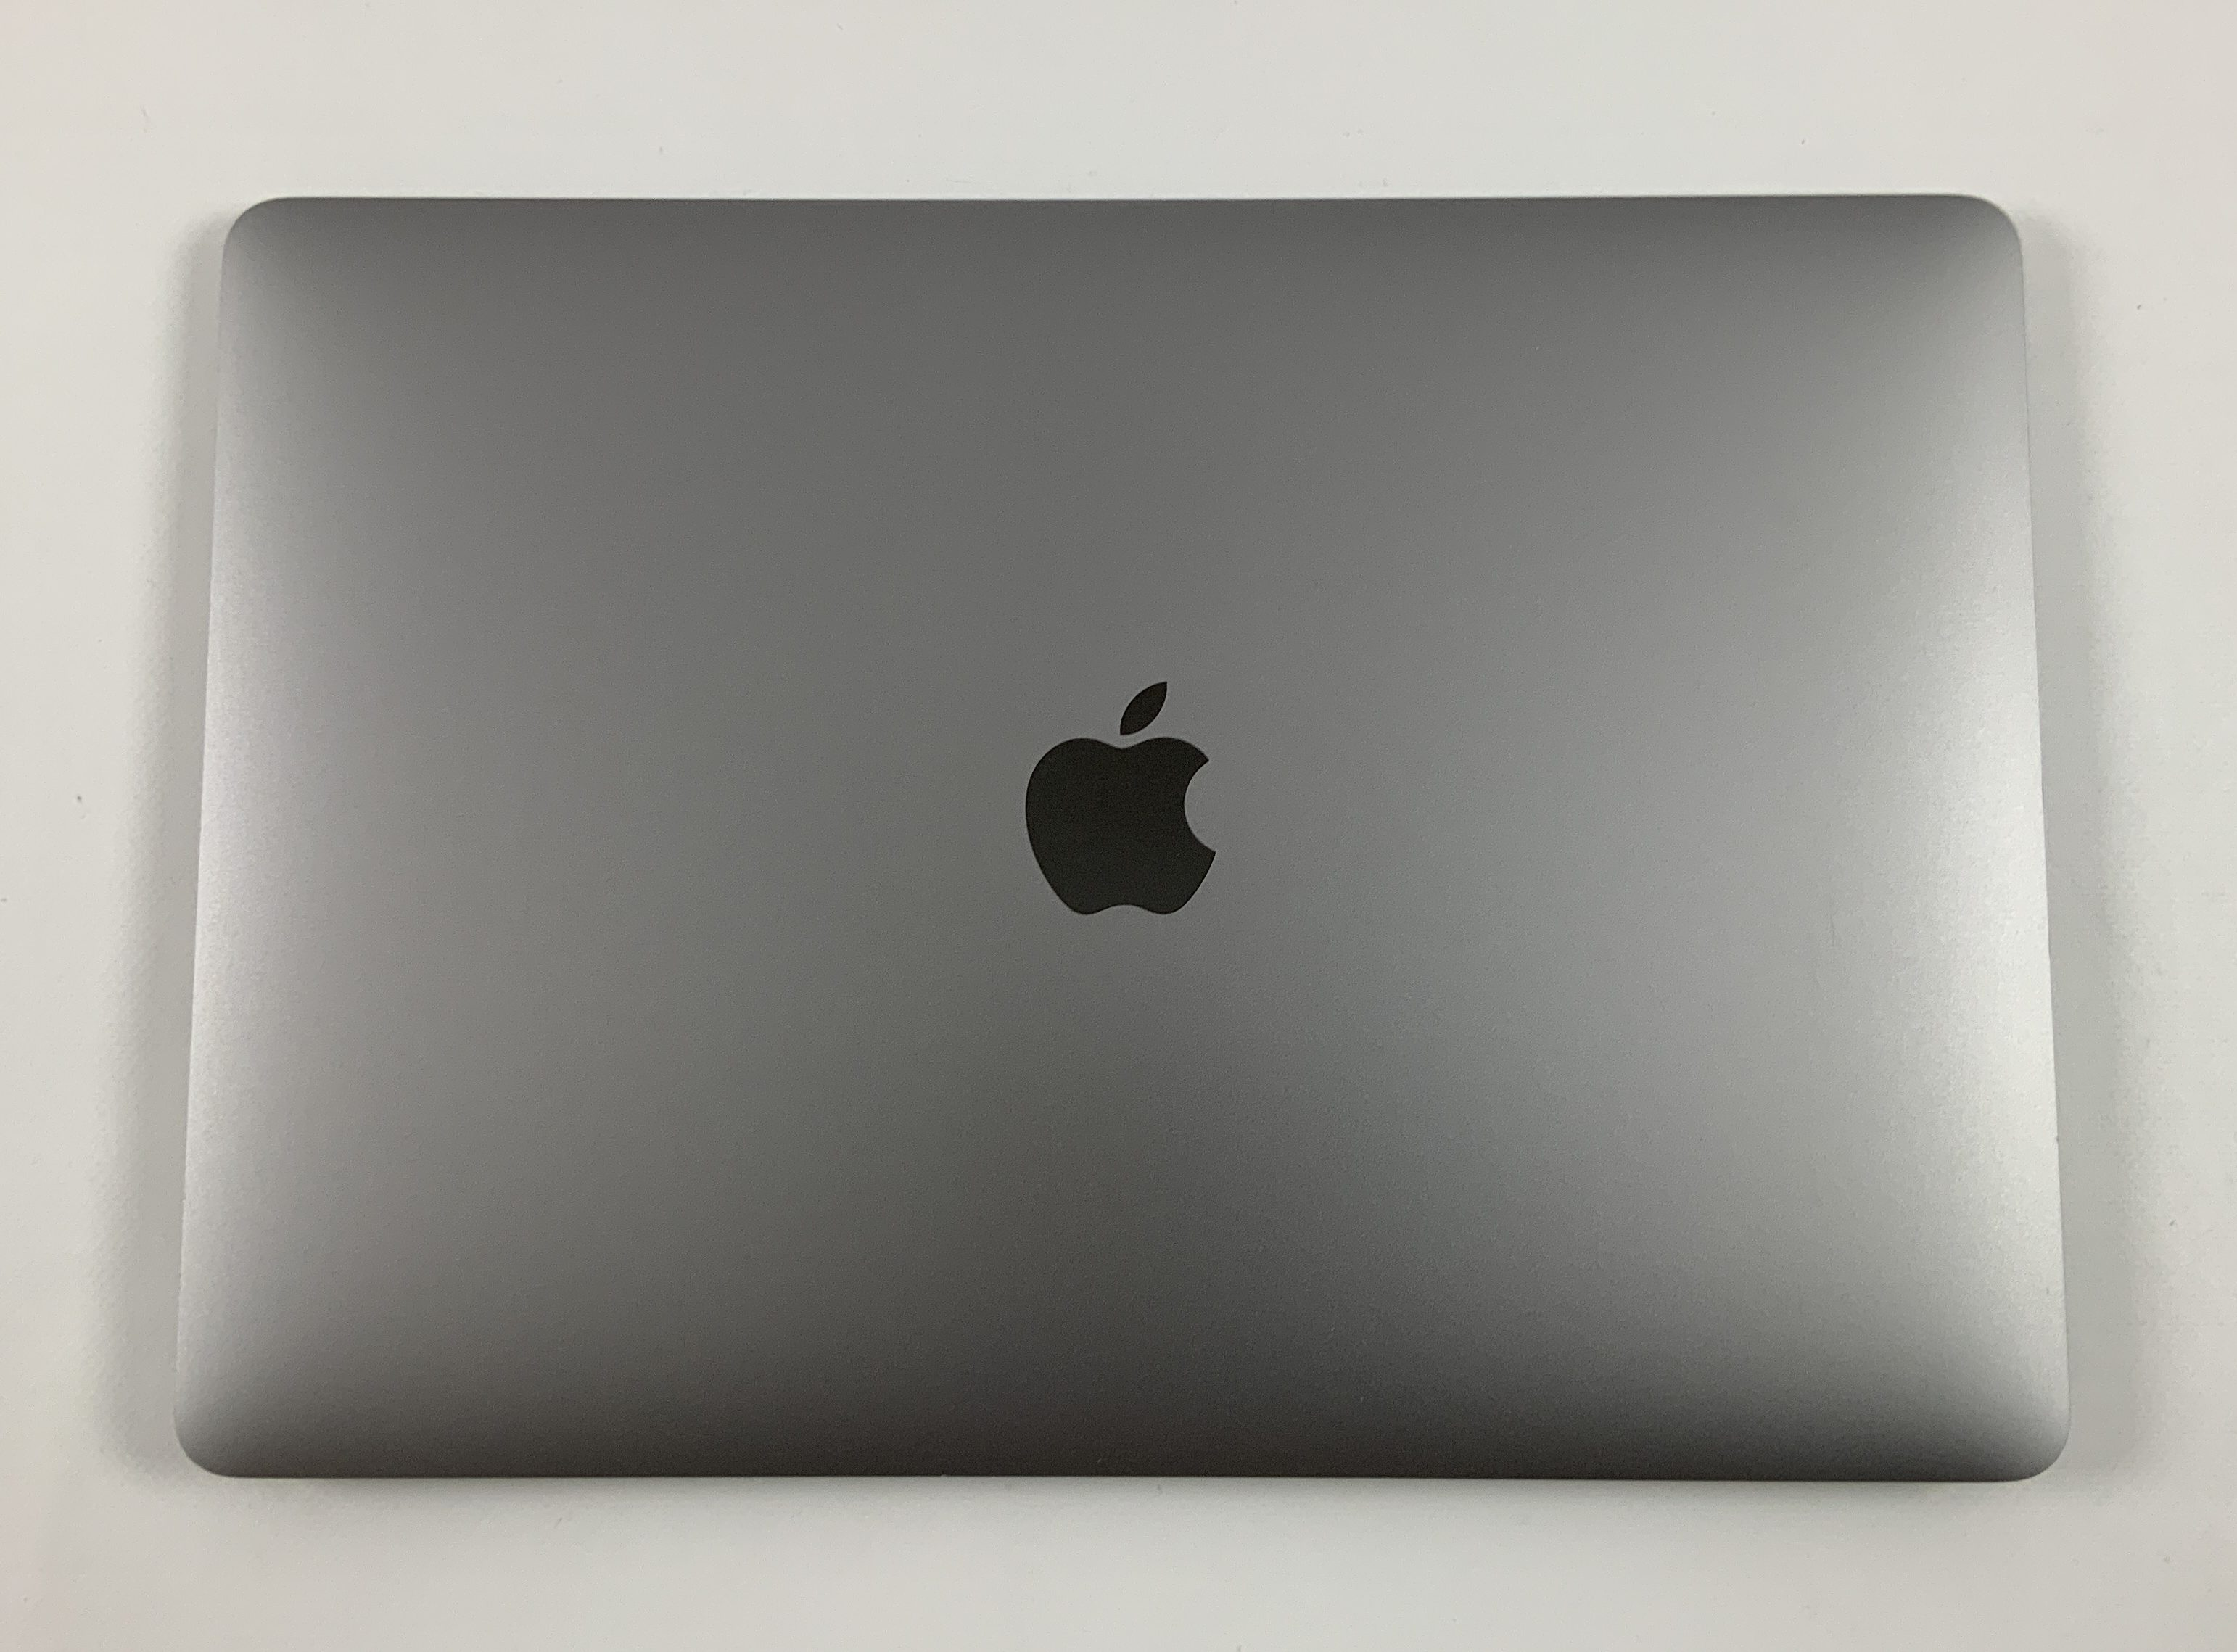 "MacBook Air 13"" Early 2020 (Intel Quad-Core i5 1.1 GHz 16 GB RAM 256 GB SSD), Space Gray, Intel Quad-Core i5 1.1 GHz, 16 GB RAM, 256 GB SSD, imagen 2"